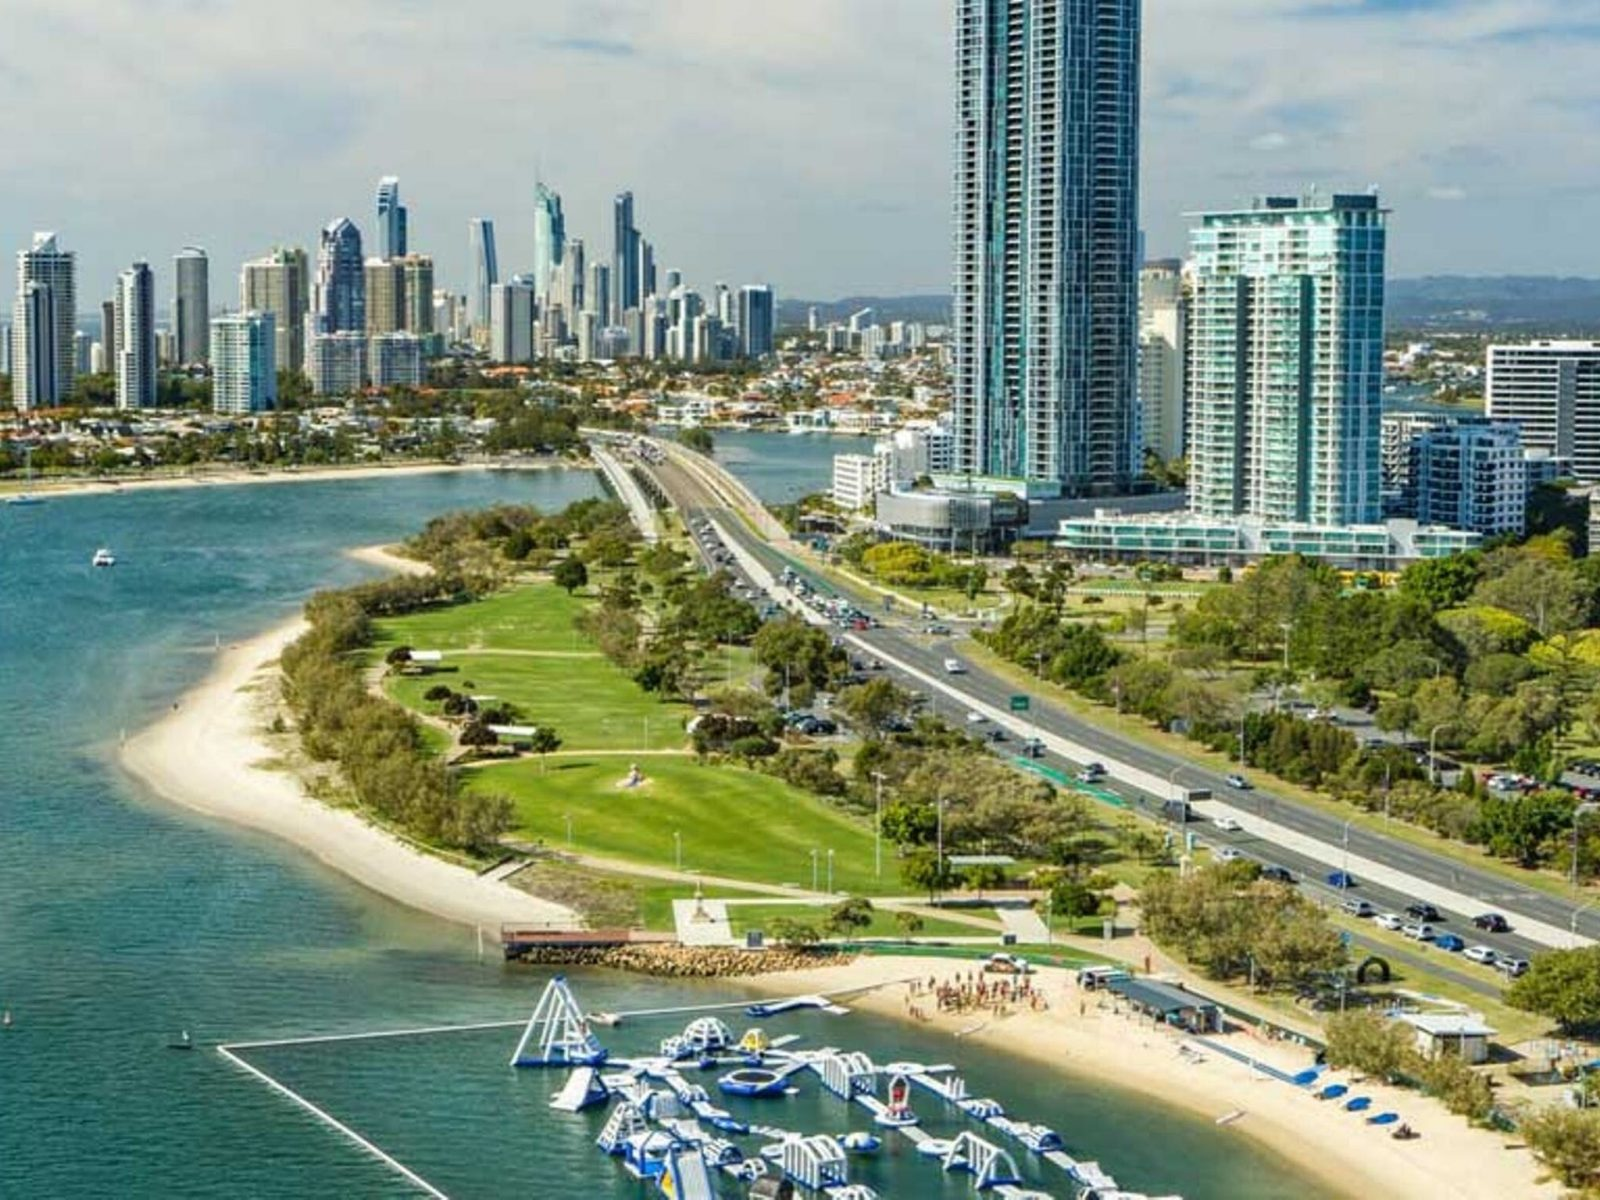 Skyline view of the Gold Coast from the Broadwater Parklands